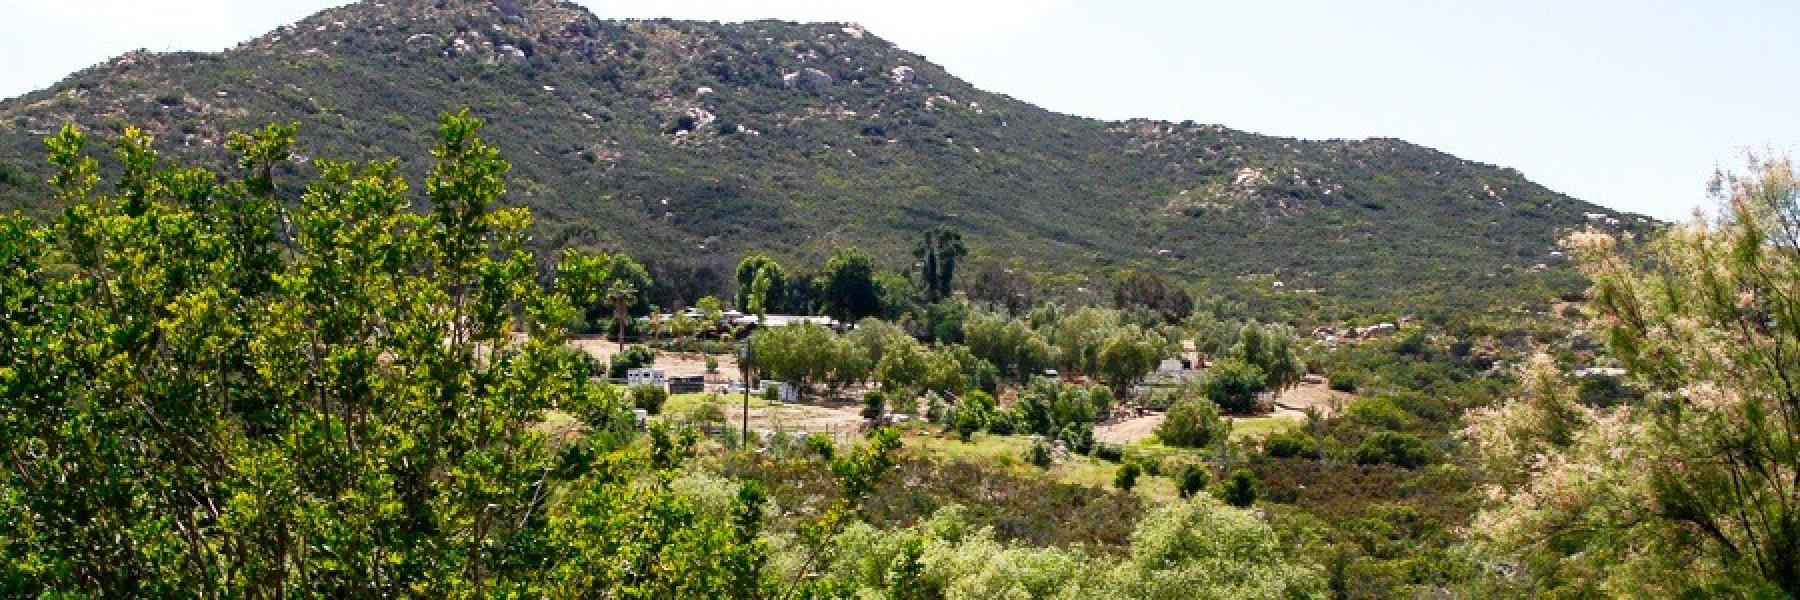 Saddlebrook Estates is a community of homes in Poway California